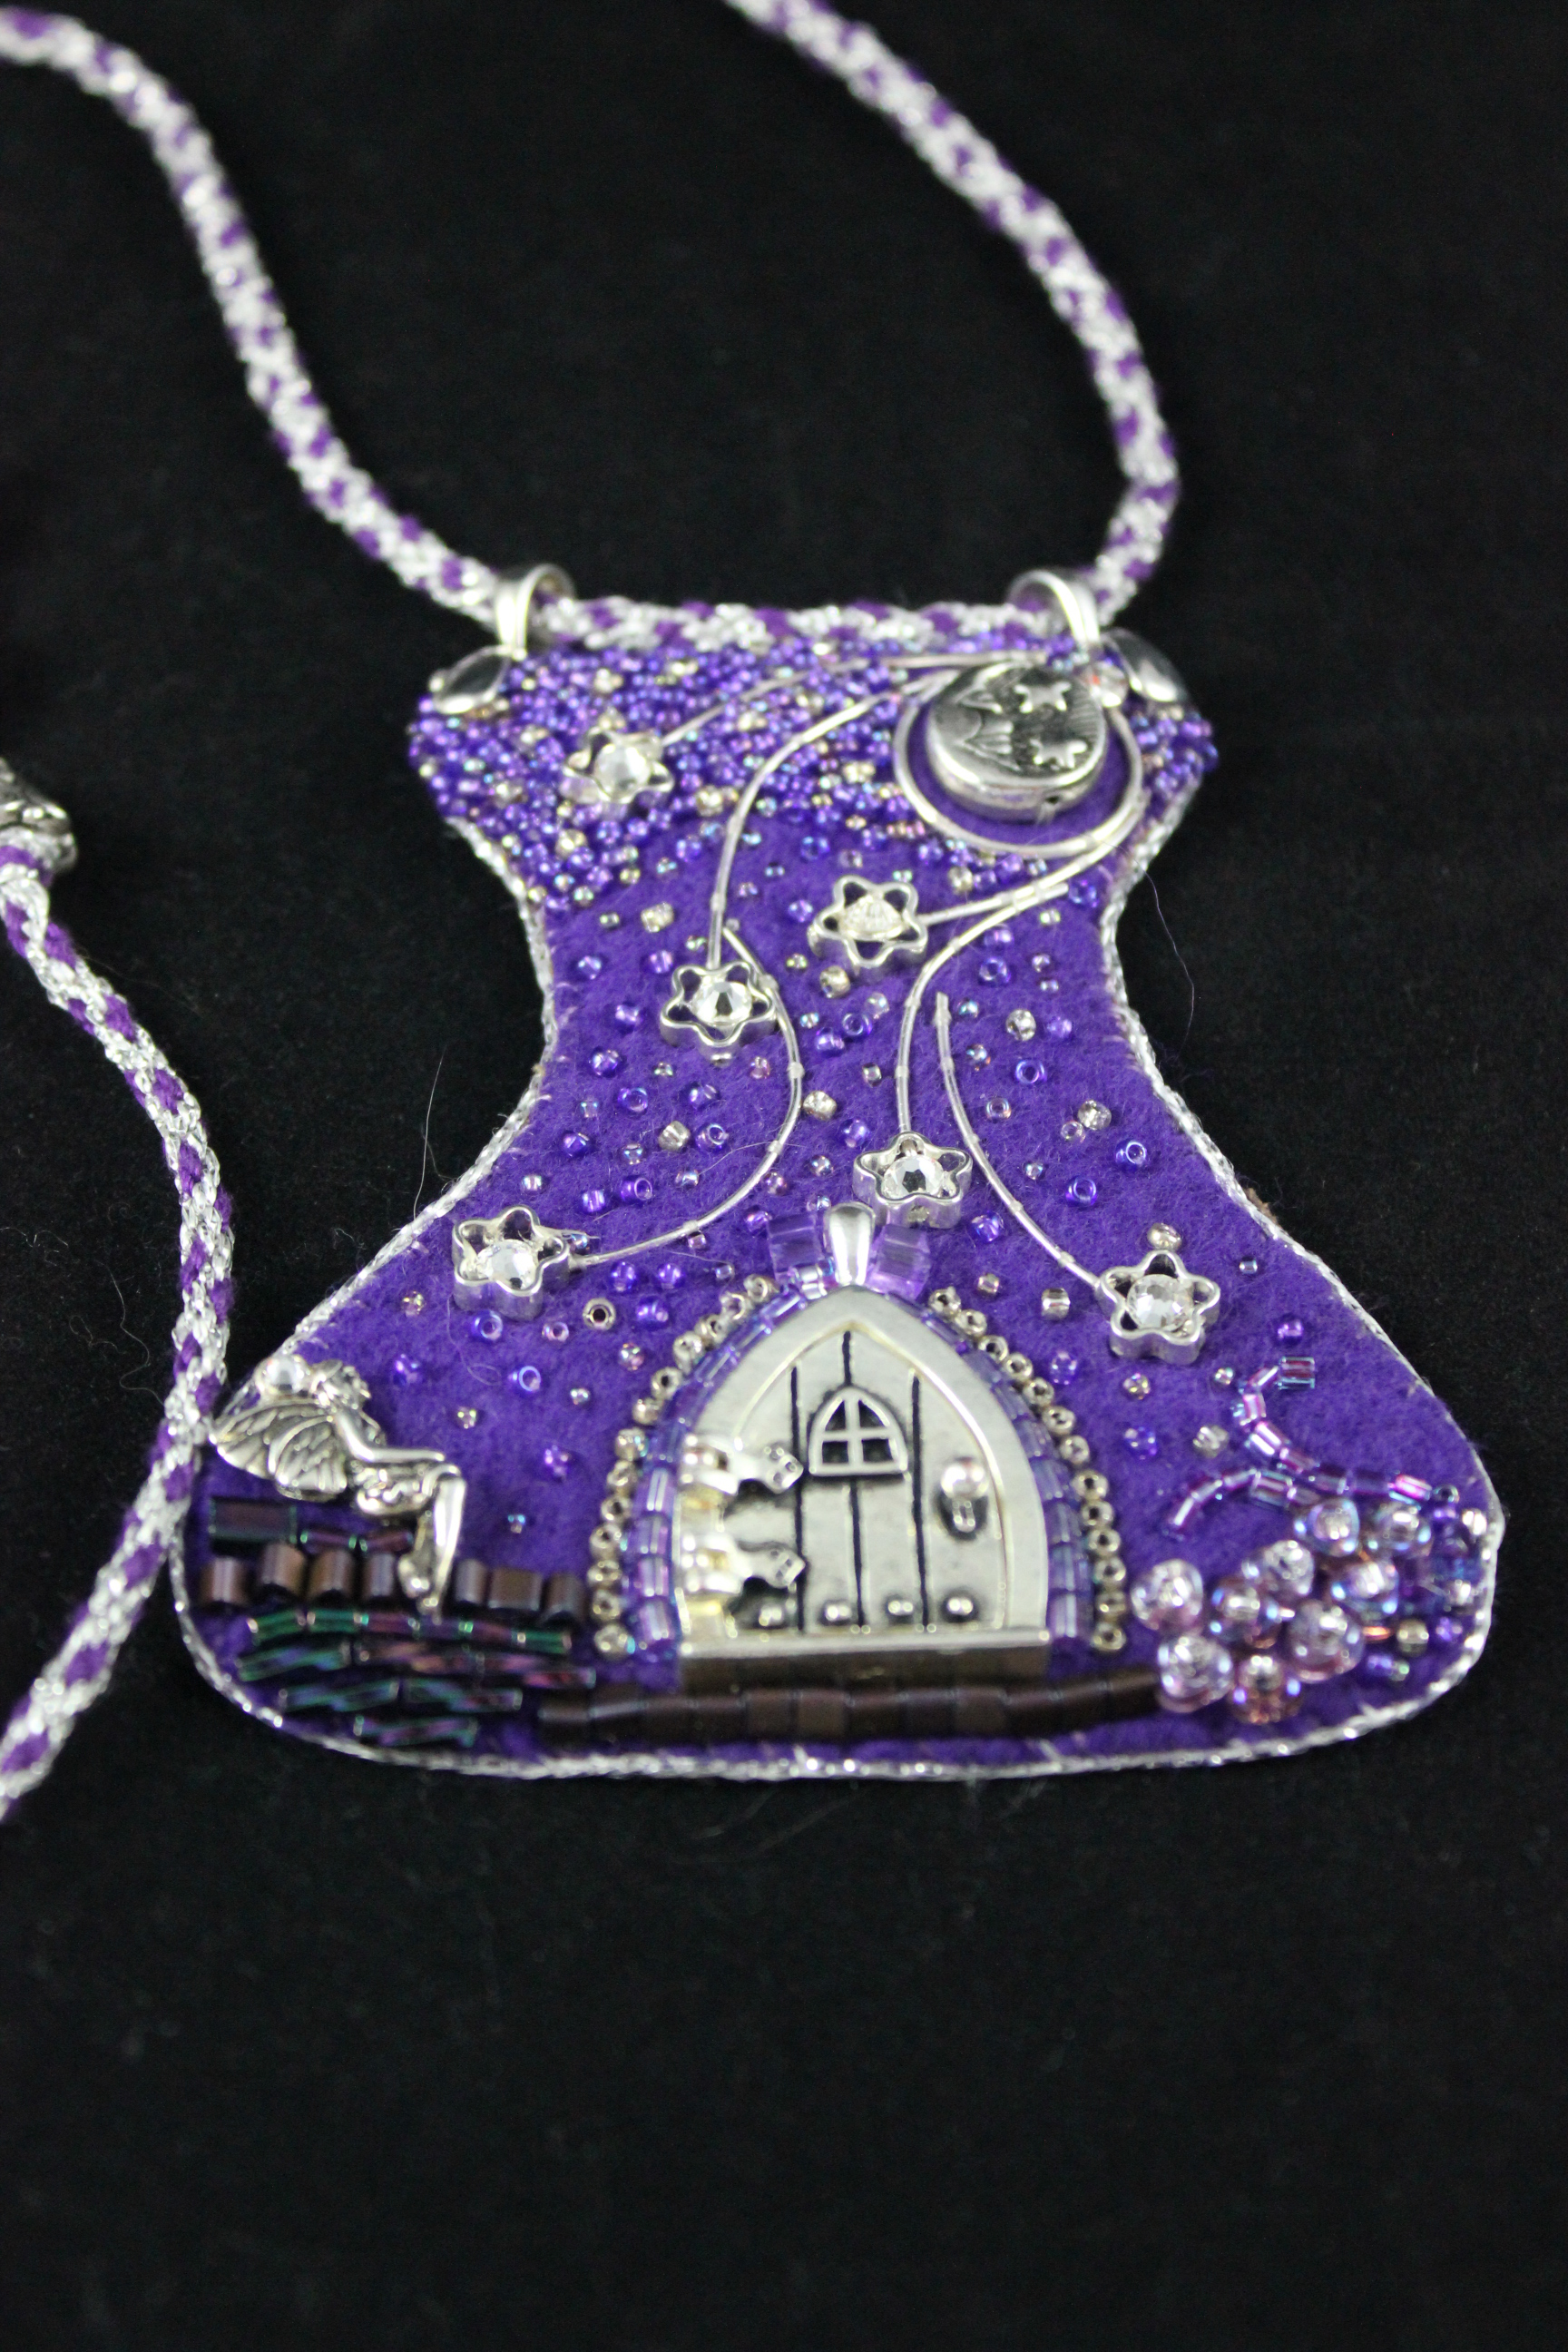 Starry Starry Night necklace